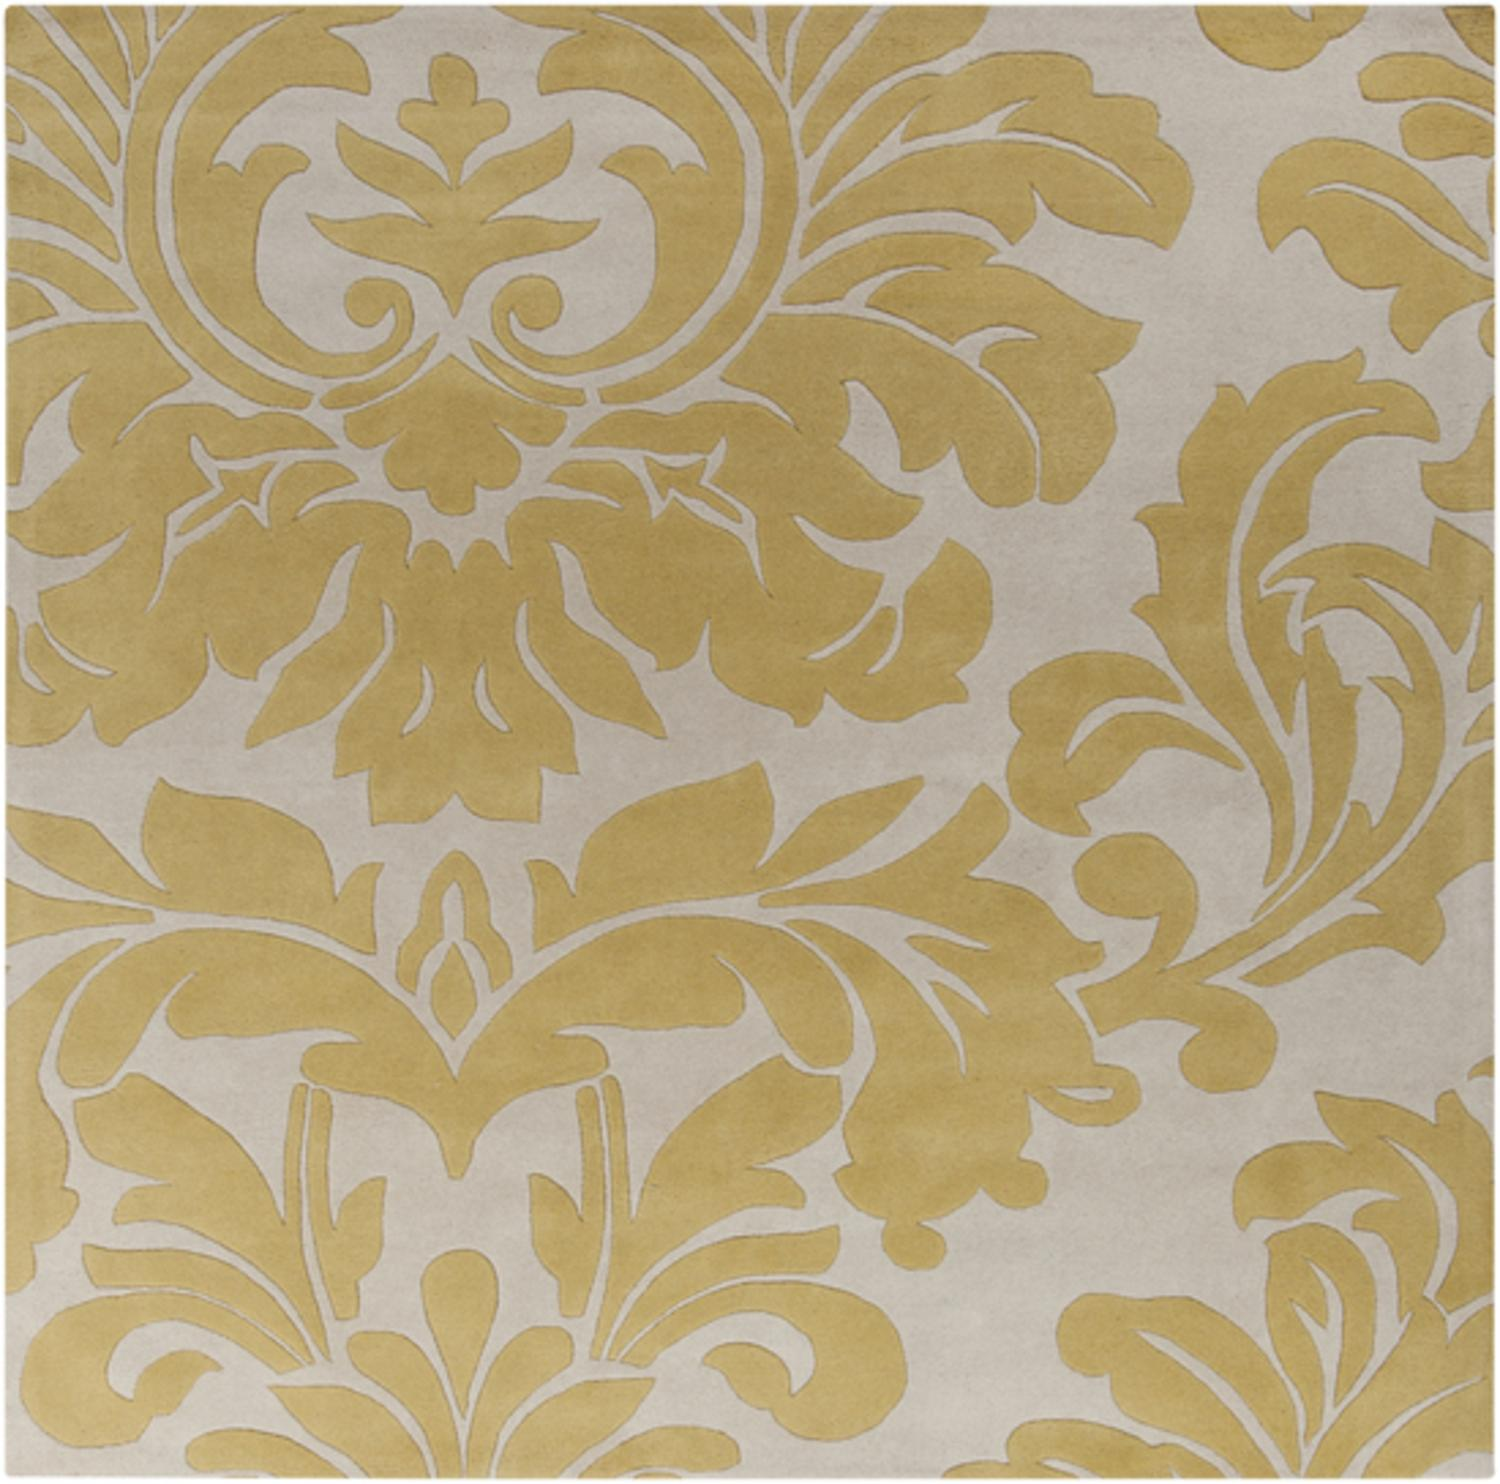 9.75' x 9.75' Falling Leaves Damask Pea Green & Creme Square Wool Area Throw Rug